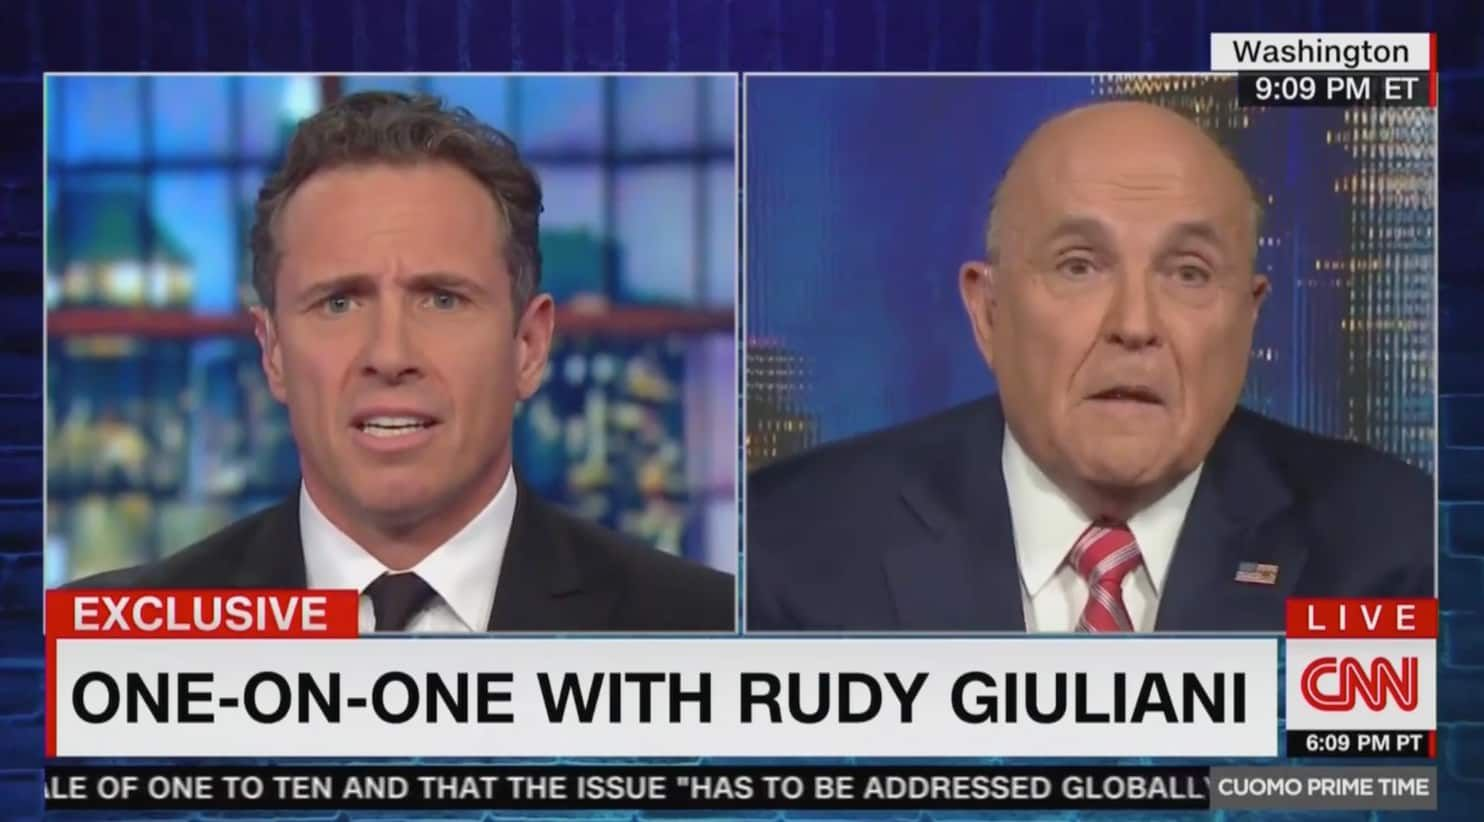 Rudy Giuliani I Never Said There Was No Collusion Between Trump Campaign And Russia Rudy Giuliani Cnn All About Time